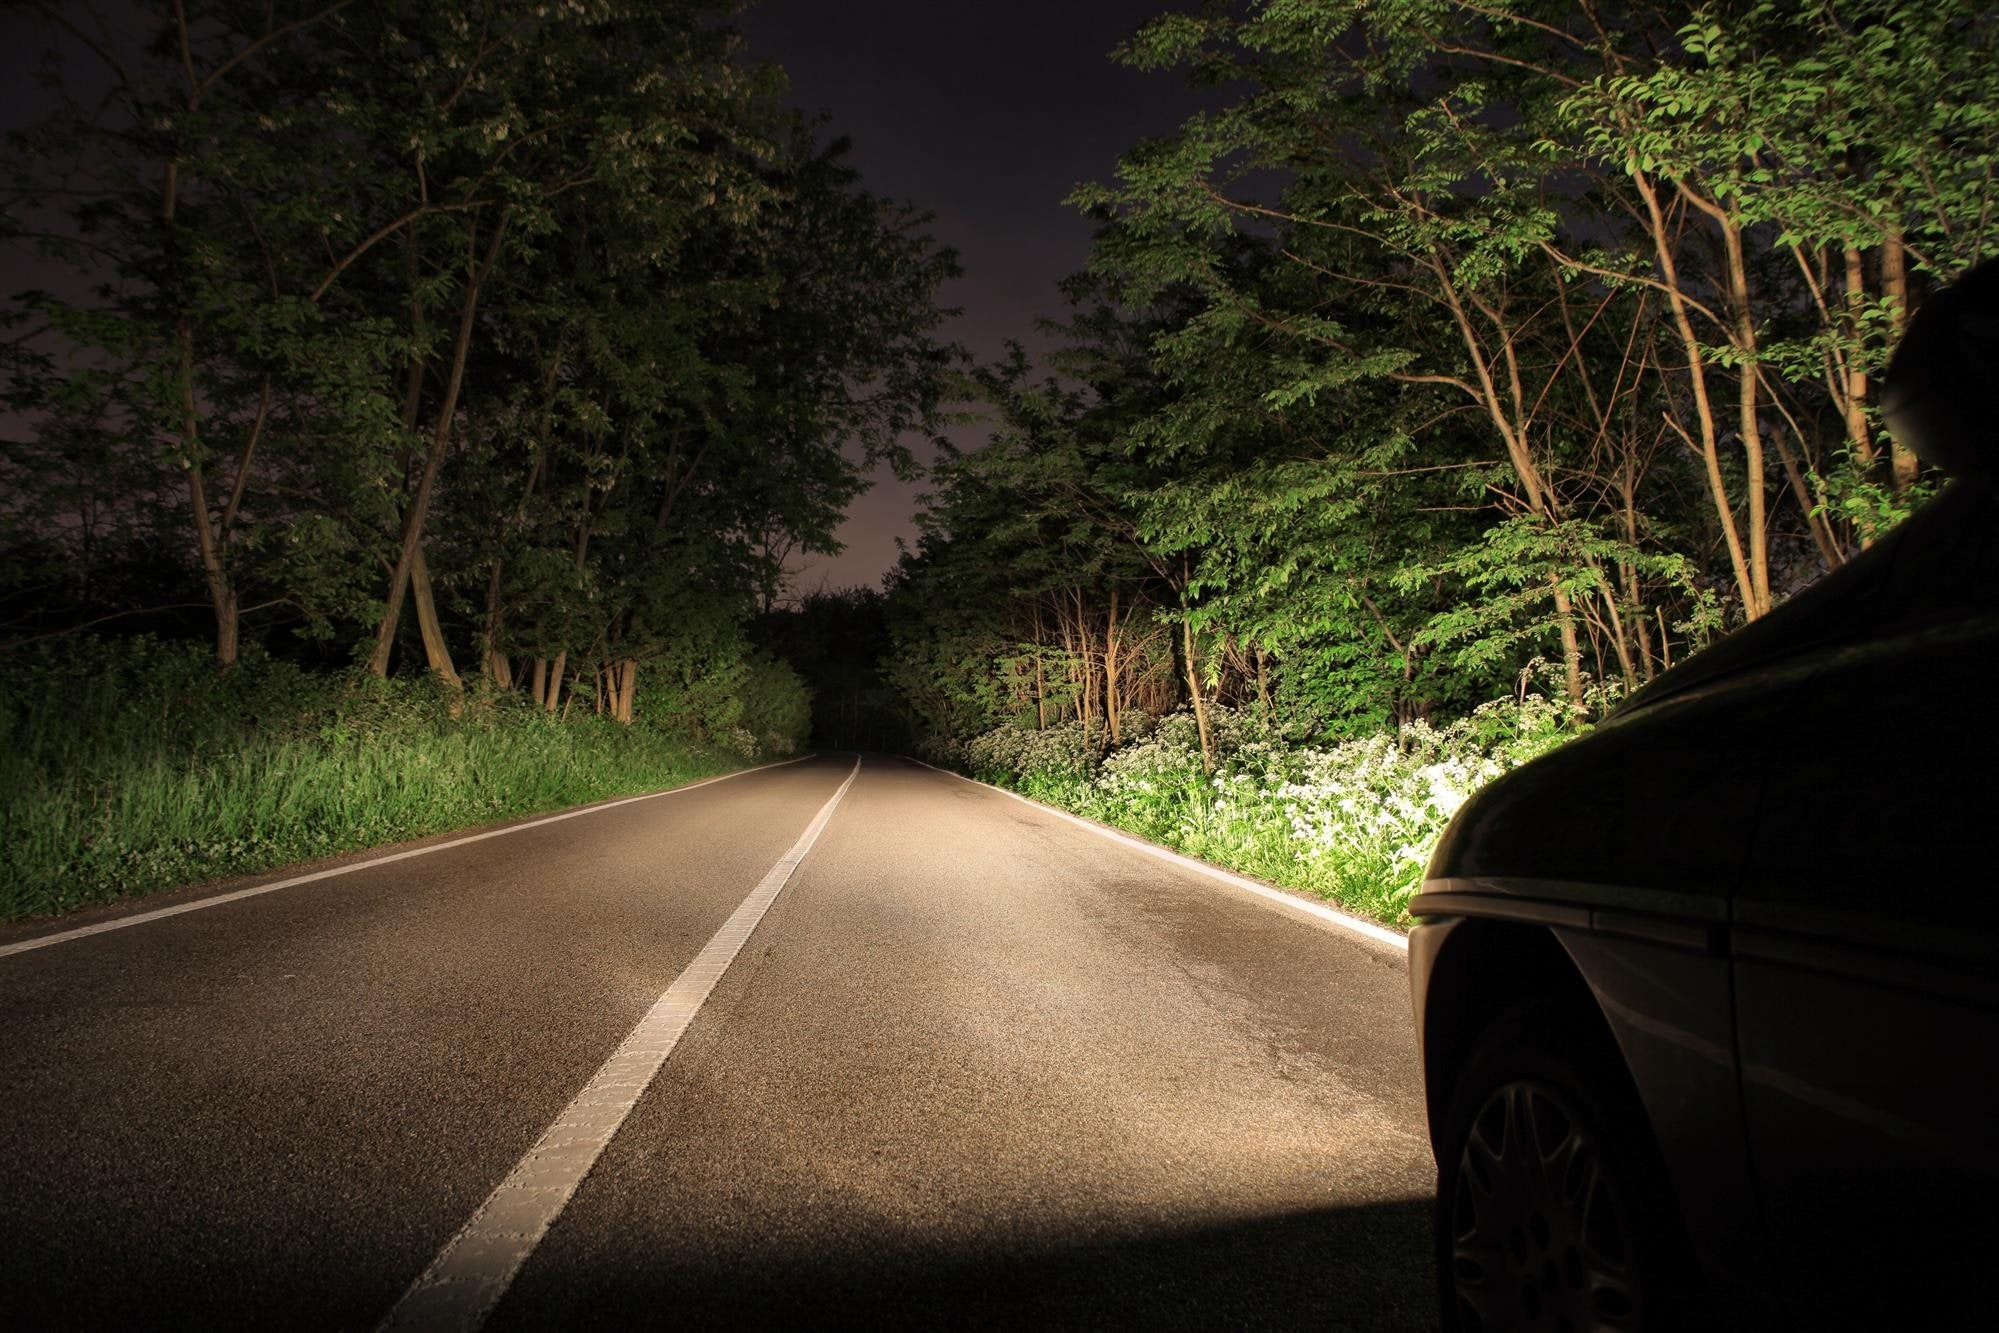 Driving After Dark? Here Are 6 Safety Tips